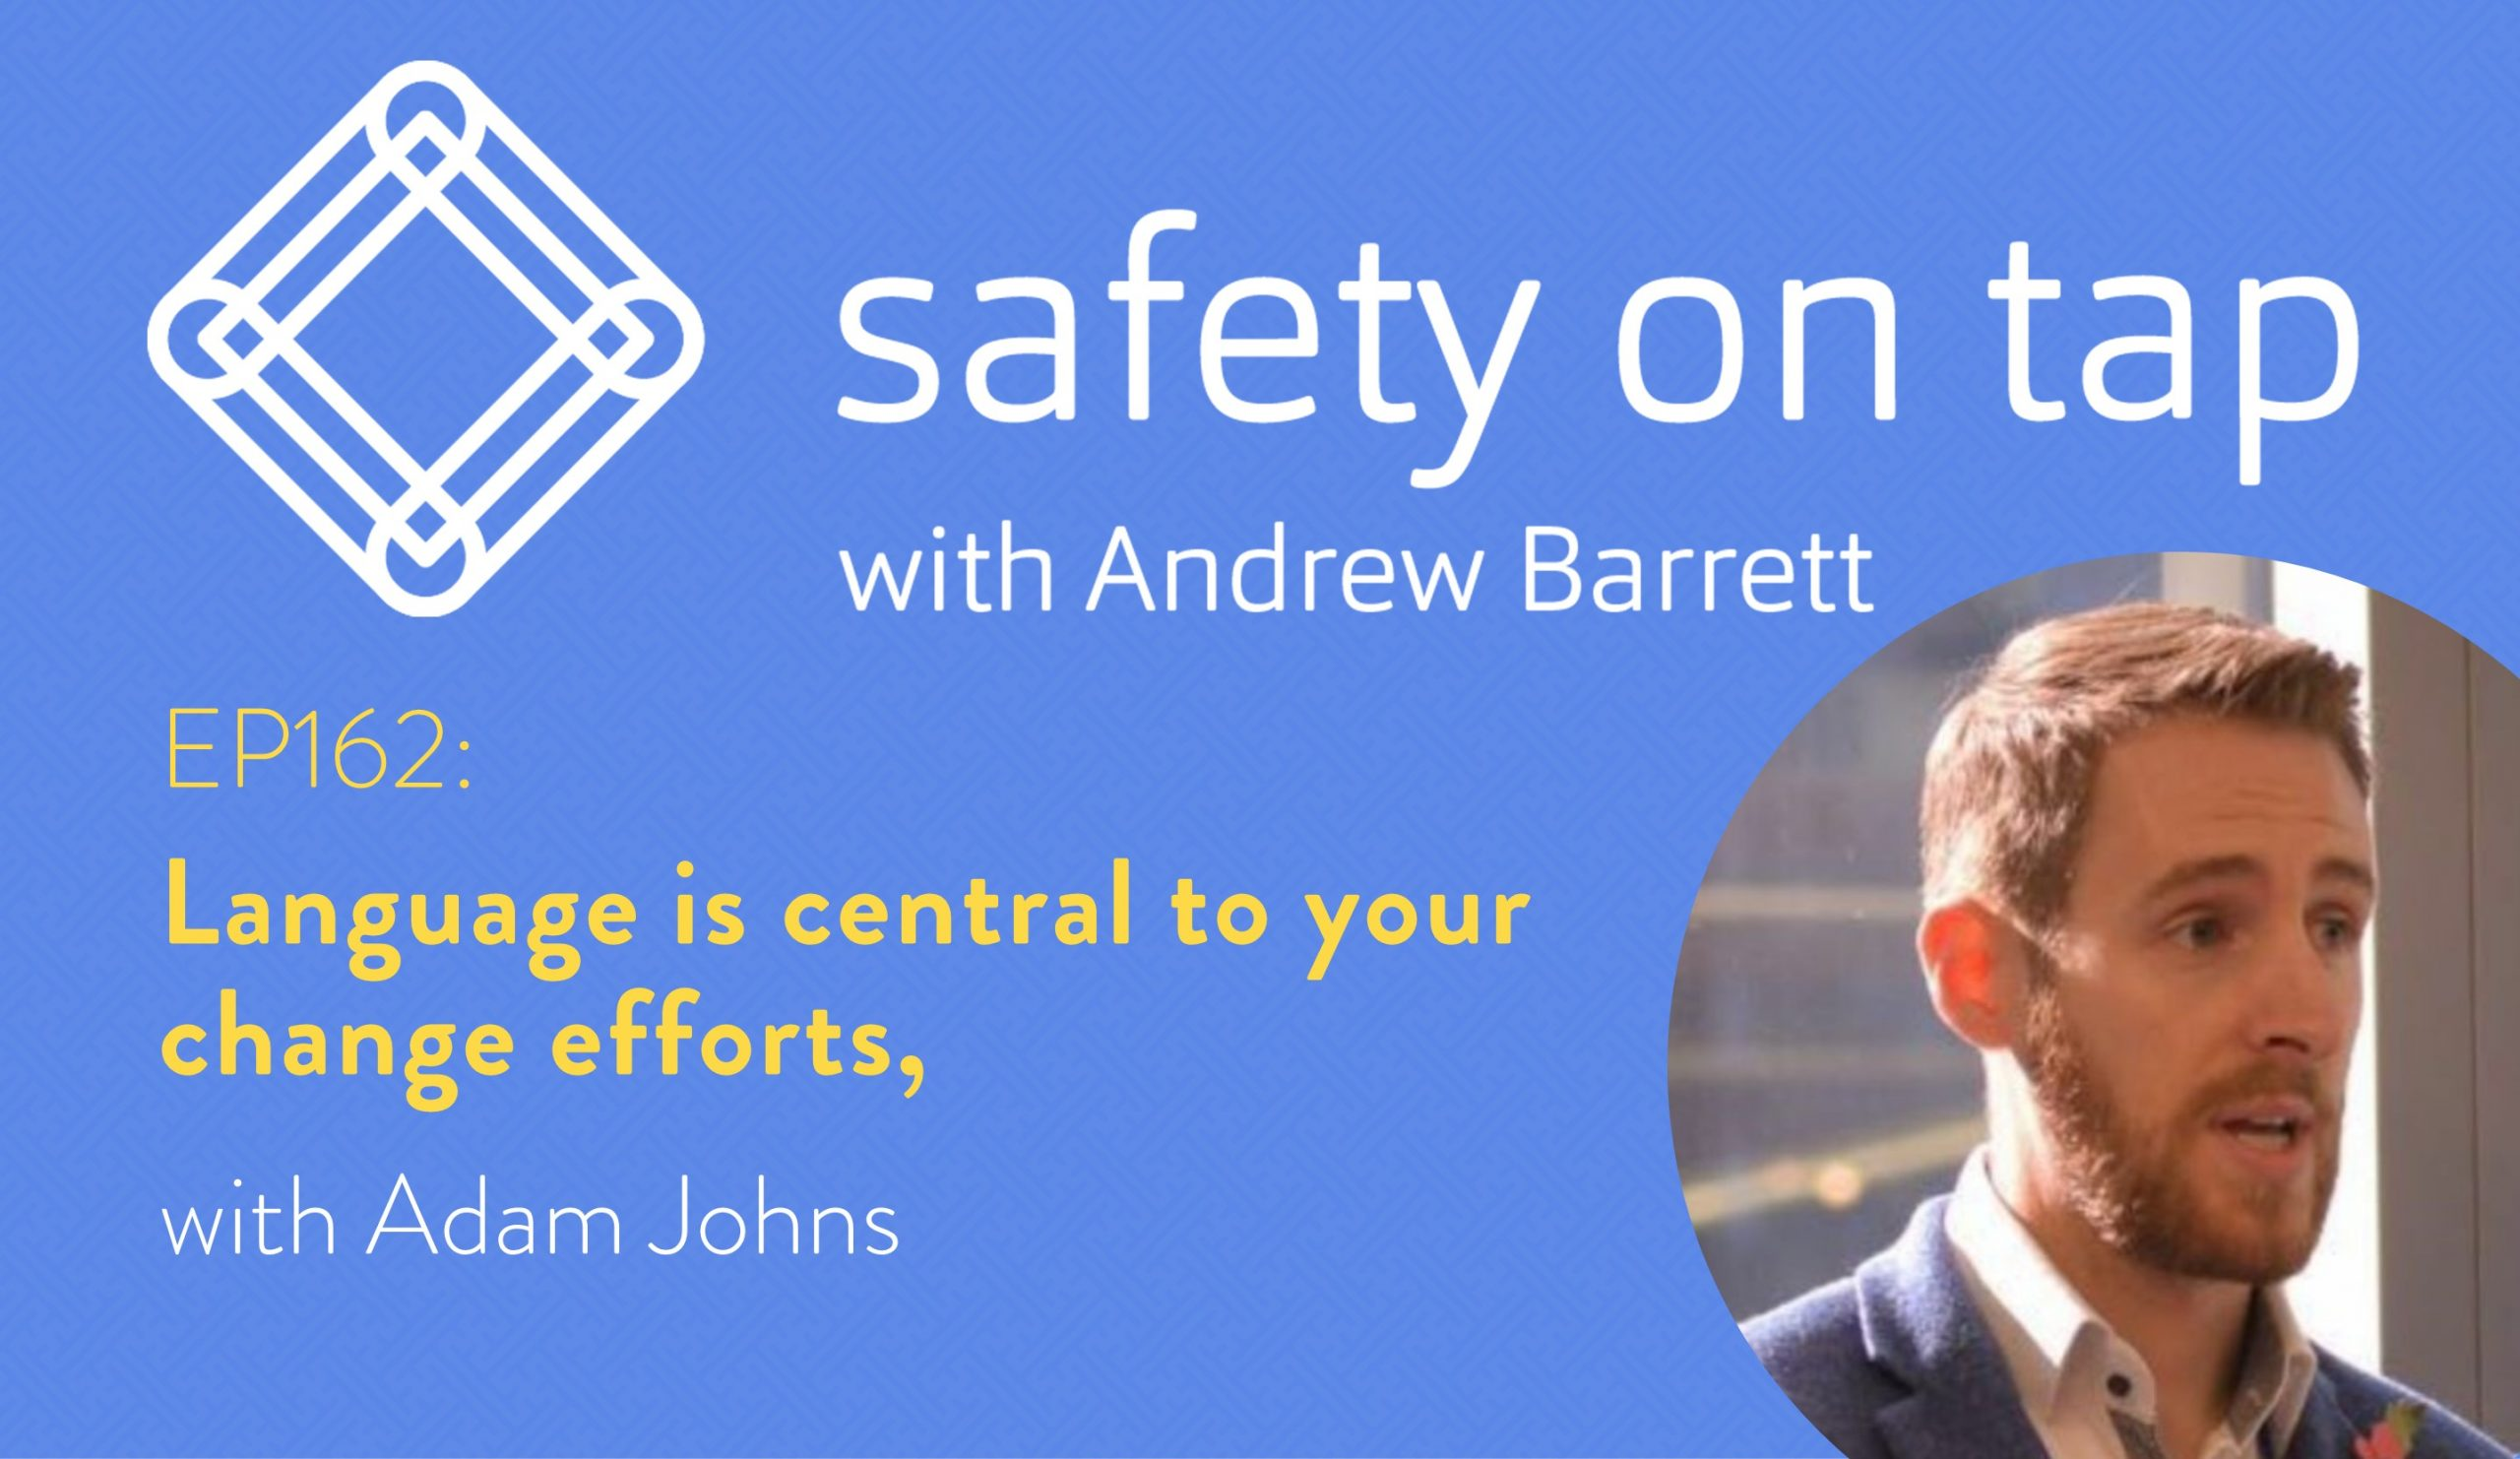 Ep162: Language is central to your change efforts,with Adam Johns